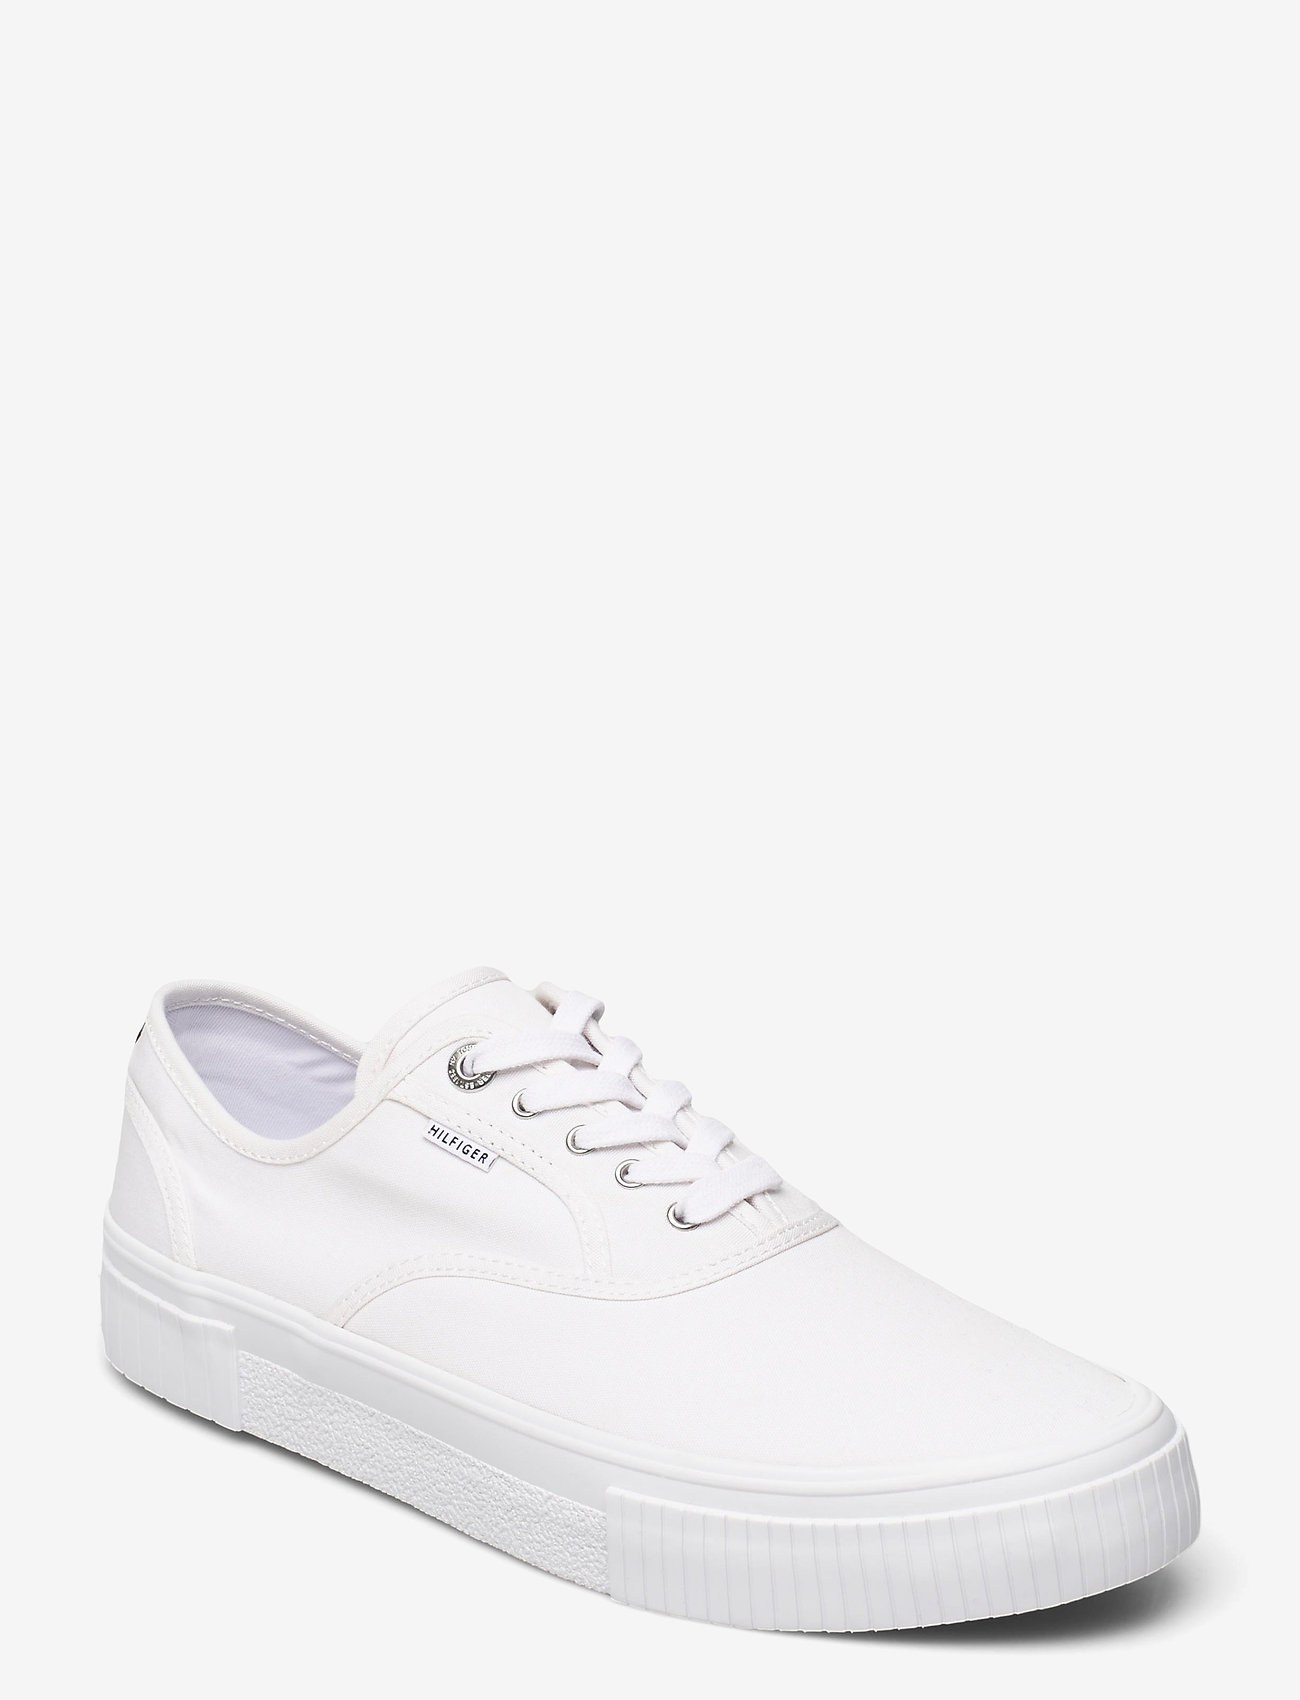 Tommy Hilfiger - ELEVATED SEASONAL VULC TEXTILE - laag sneakers - white - 1